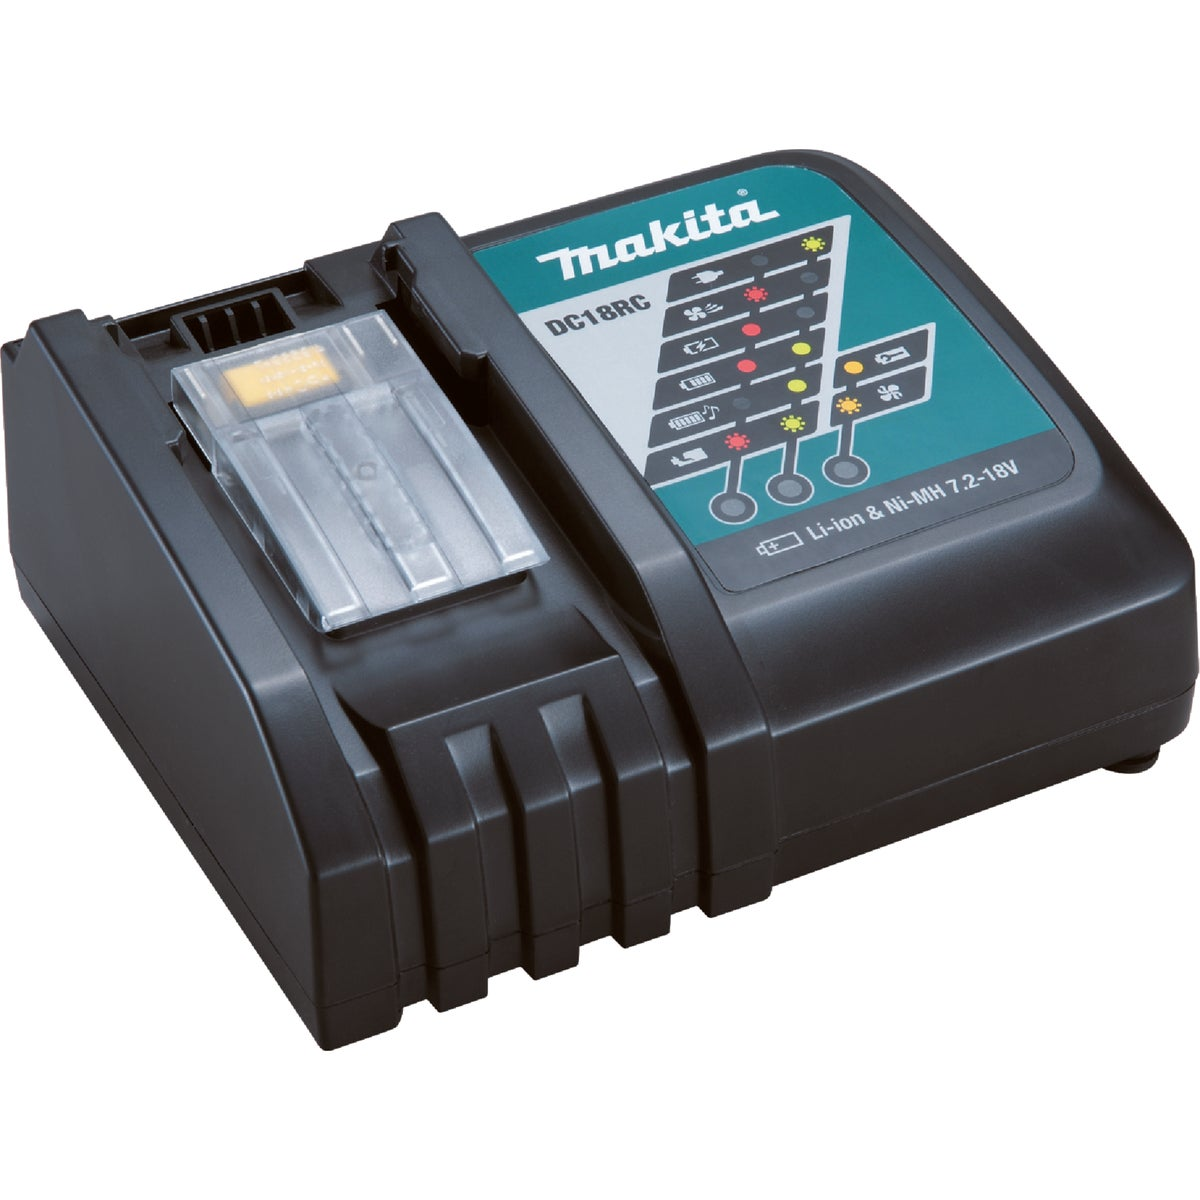 18V RAPID CHARGER - DC18RC by Makita Usa Accessory